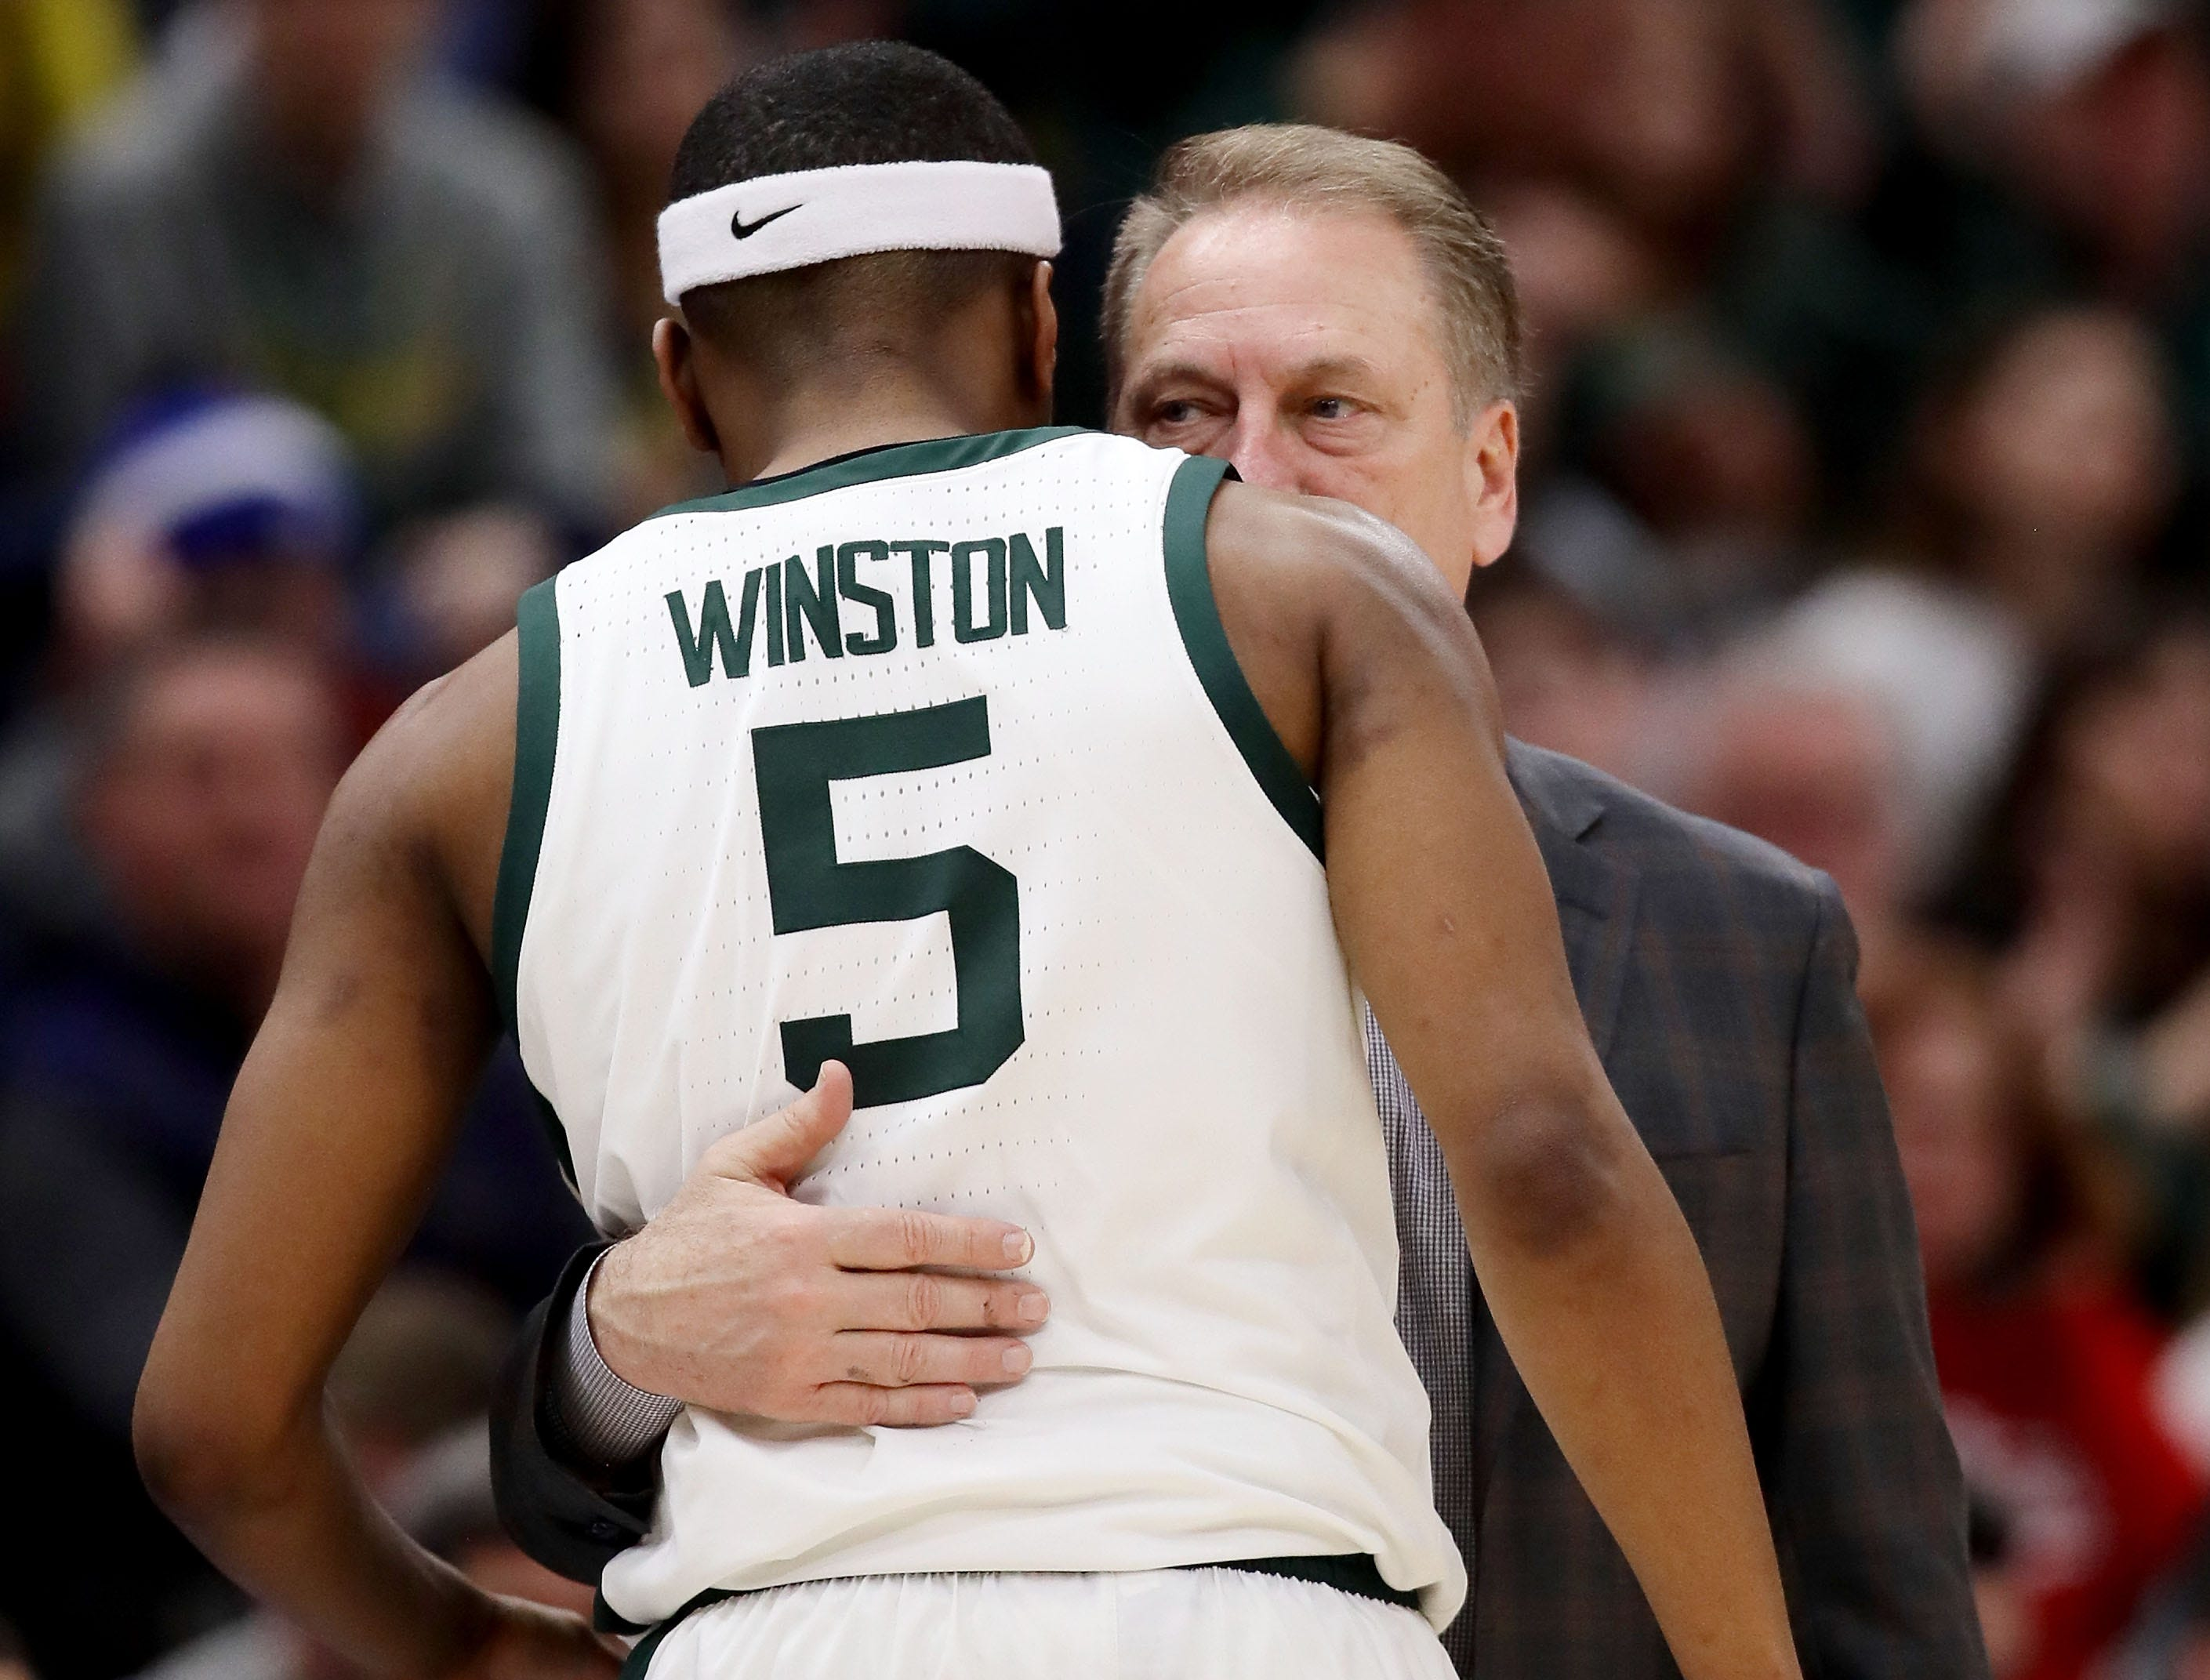 Cassius Winston #5 and head coach Tom Izzo of the Michigan State Spartans meet in the second half against the Wisconsin Badgers during the semifinals of the Big Ten Basketball Tournament at the United Center on March 16, 2019 in Chicago, Illinois.